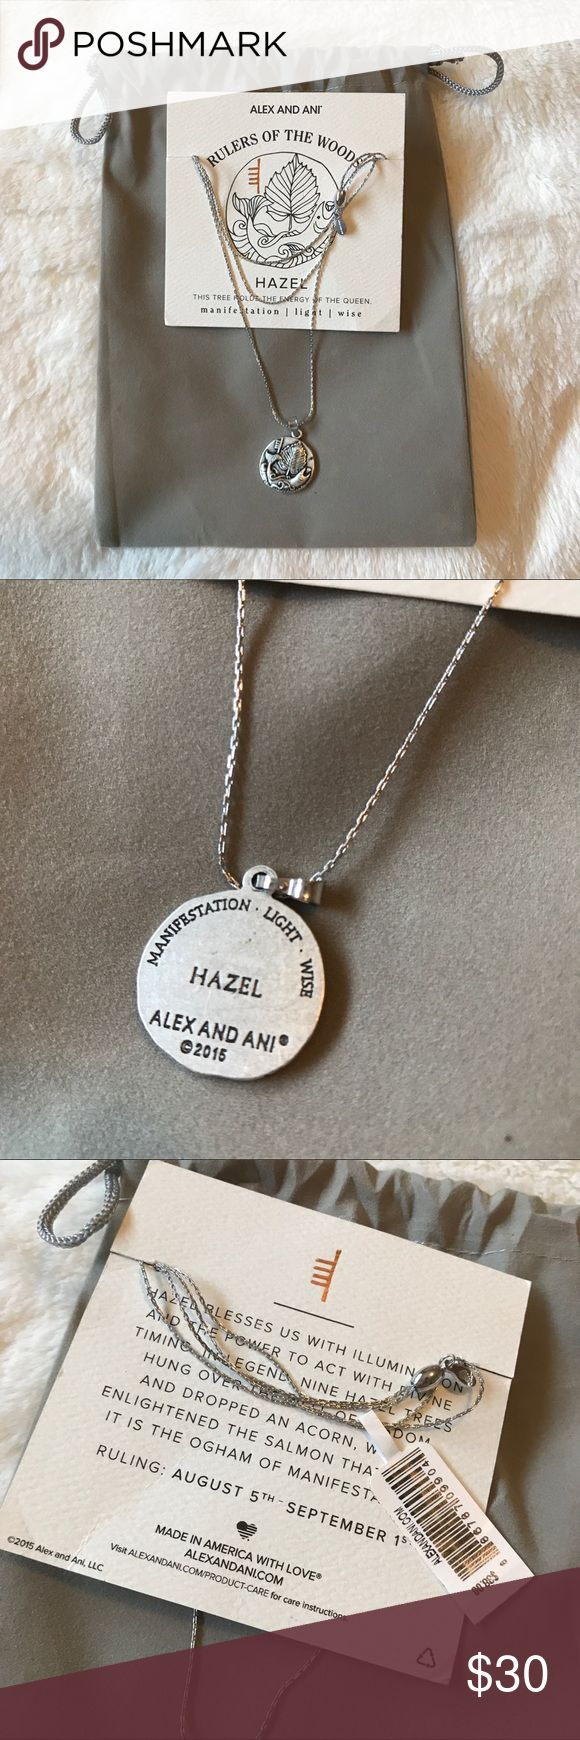 Alex and Ani Rulers of the Woods Hazel Necklace Alex and Ani adjustable necklace. This is the Rulers of the Woods necklace from 2015. Brand new with tags. Comes in Pouch shown in photo. Alex And Ani Jewelry Necklaces